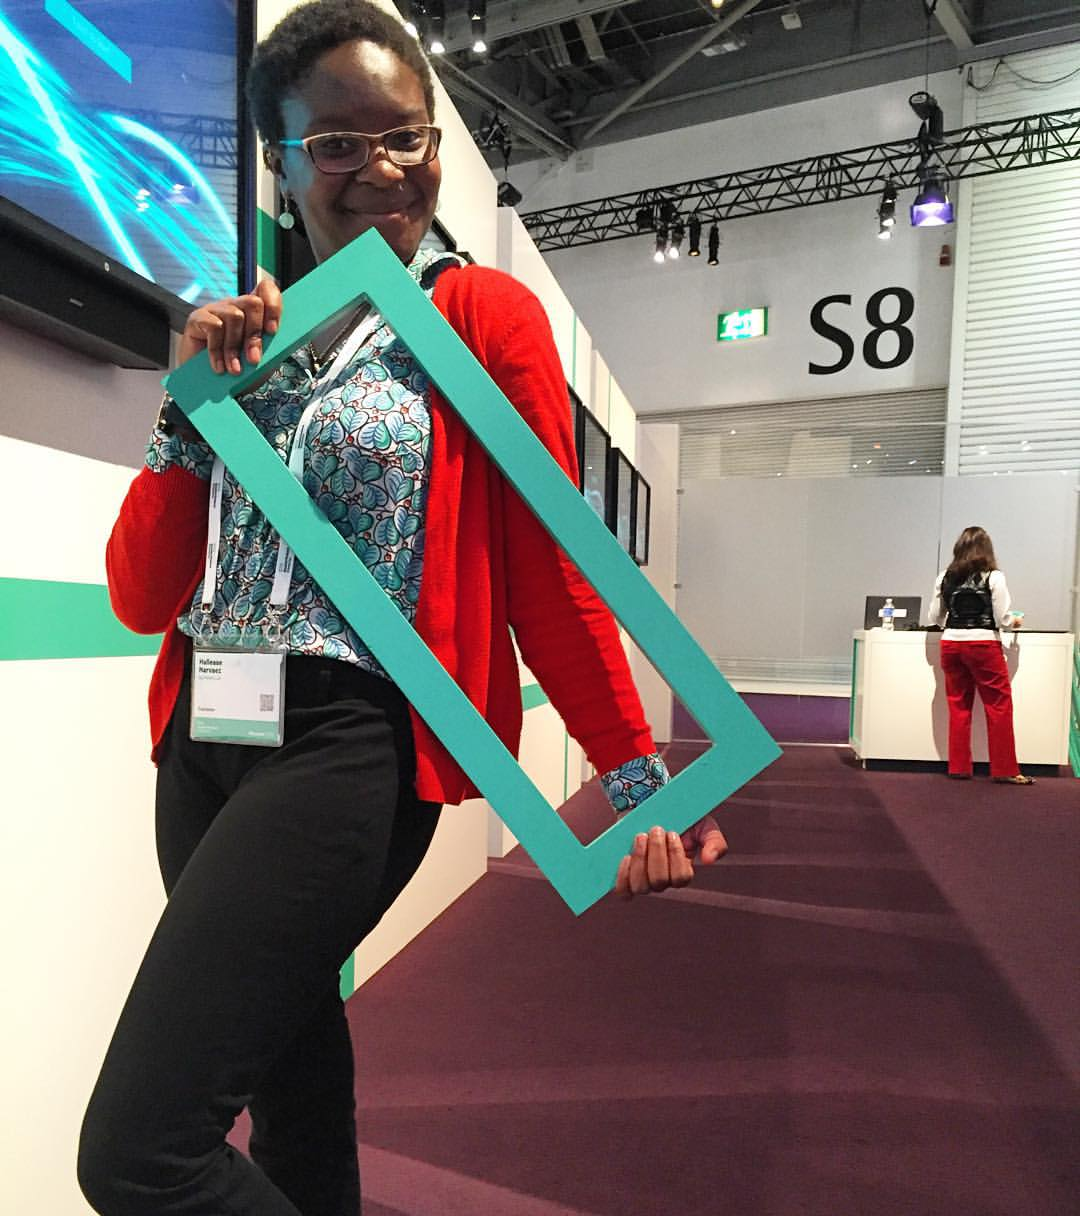 Me holding the new HPE logo